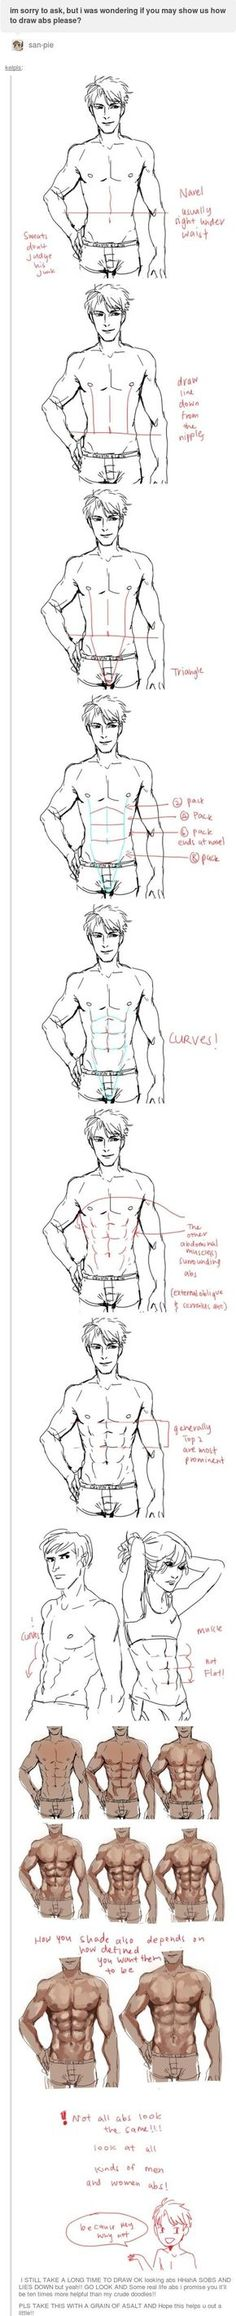 how to draw abs. http://kelpls.tumblr.com/post/72186004376/im-sorry-to-ask-but-i-was-wondering-if-you-may-show-us: